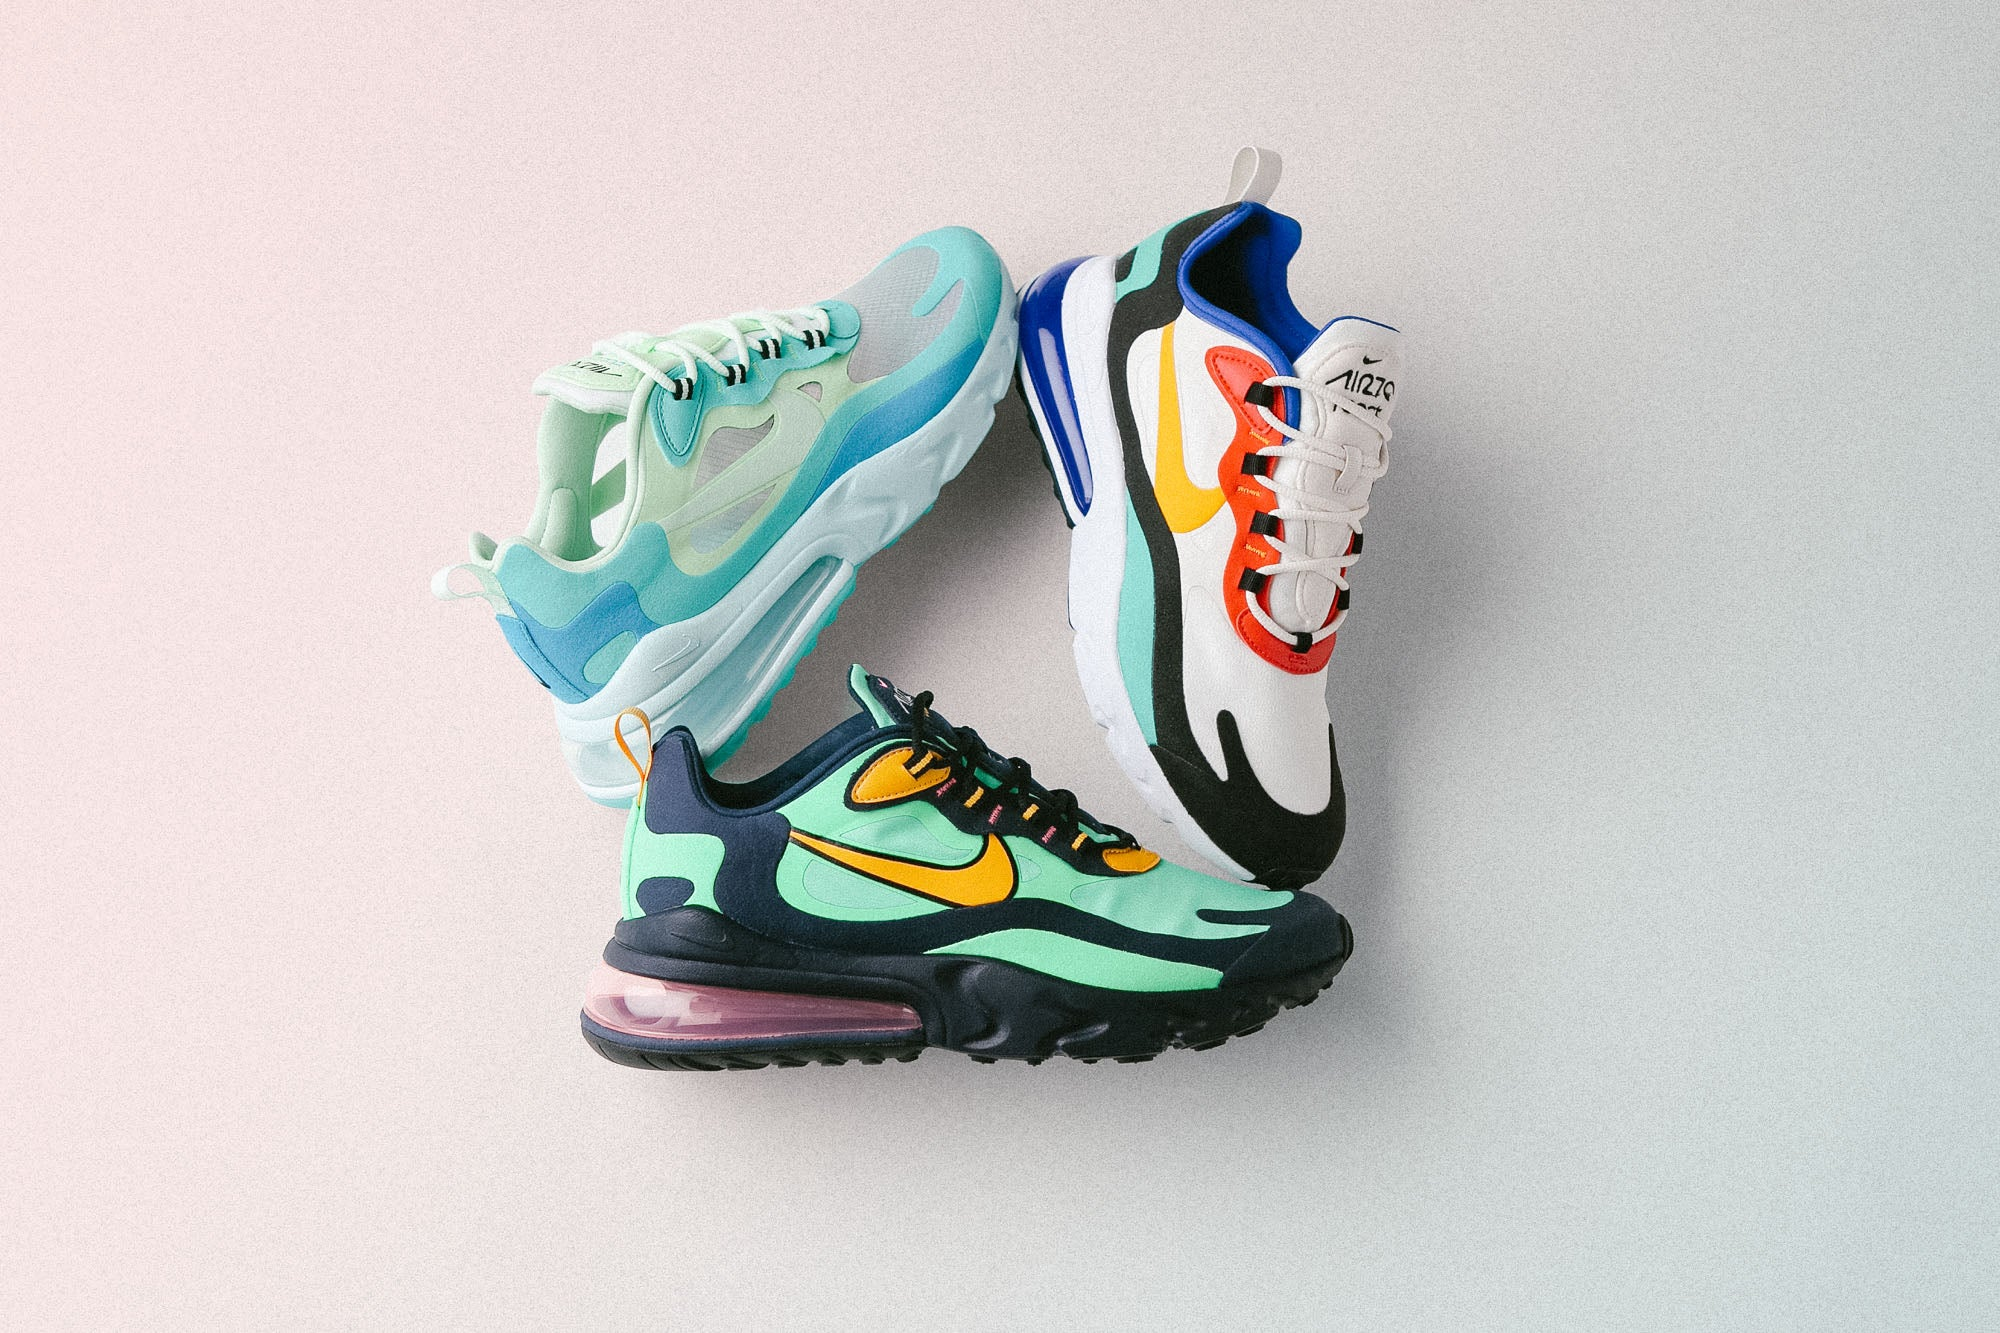 NSW Fall 19 : The Story of the Nike Air Max 270 Shoes | Always in ...